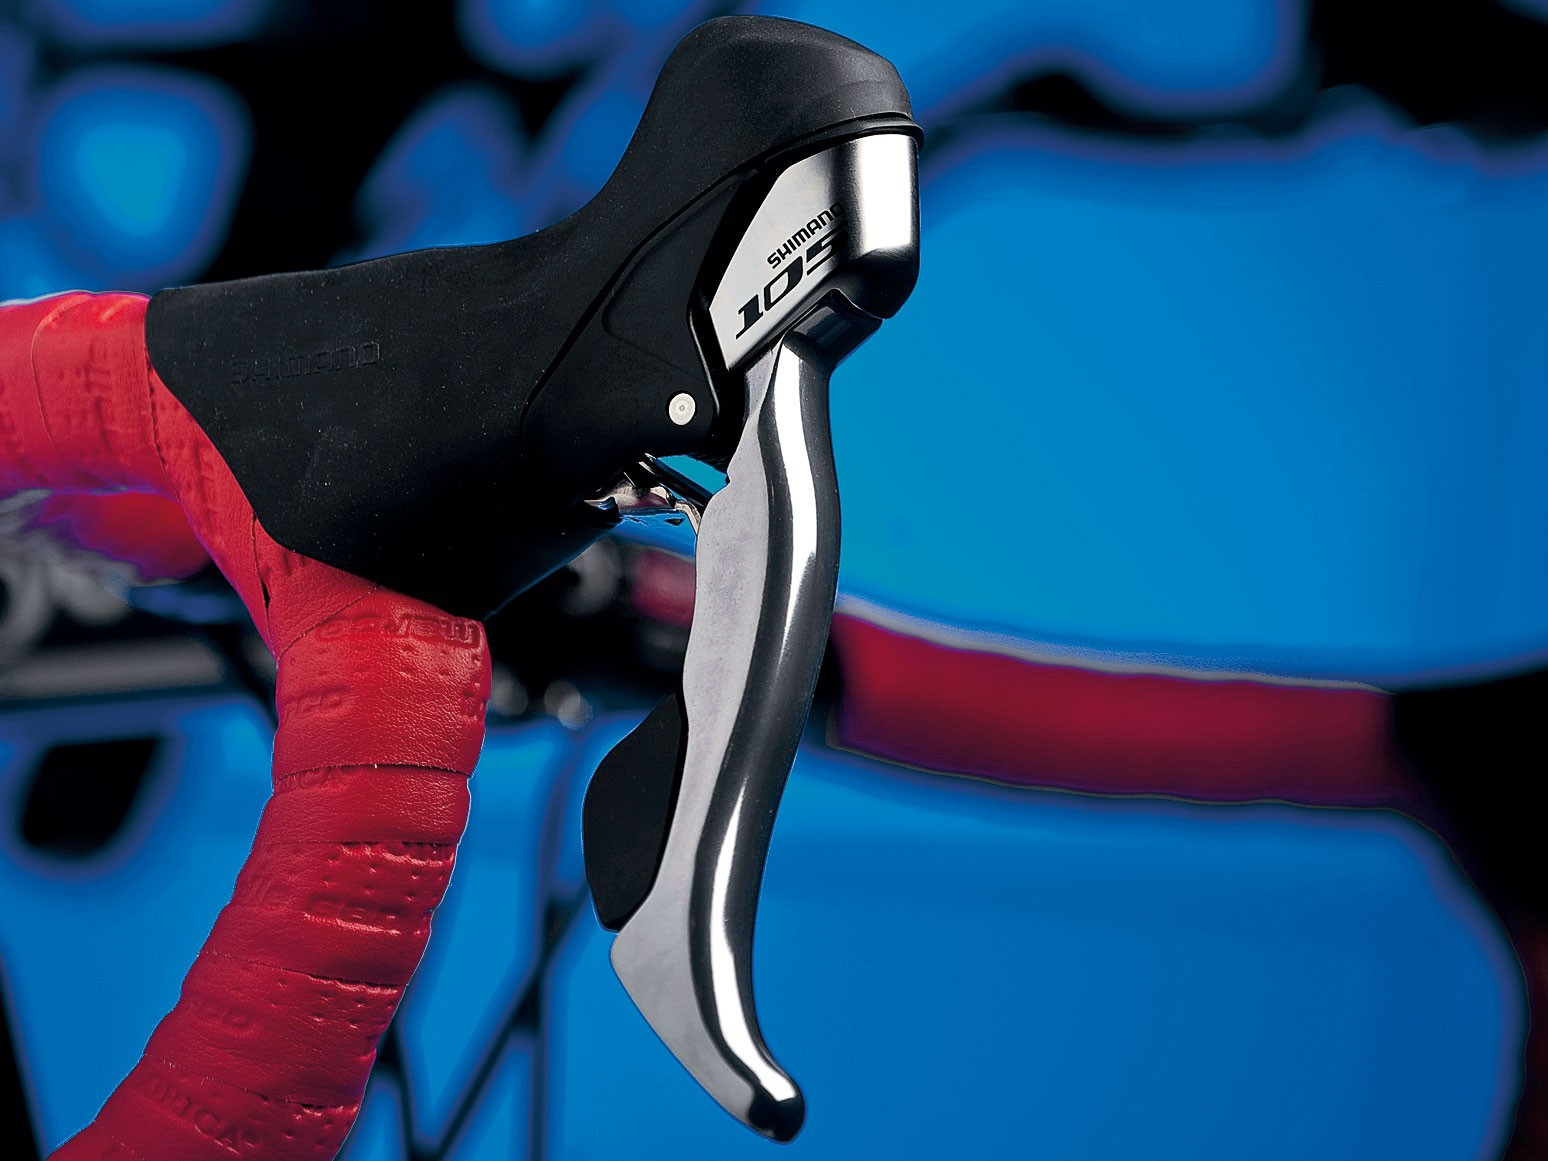 Shimano 105 ST-5700 double shift levers